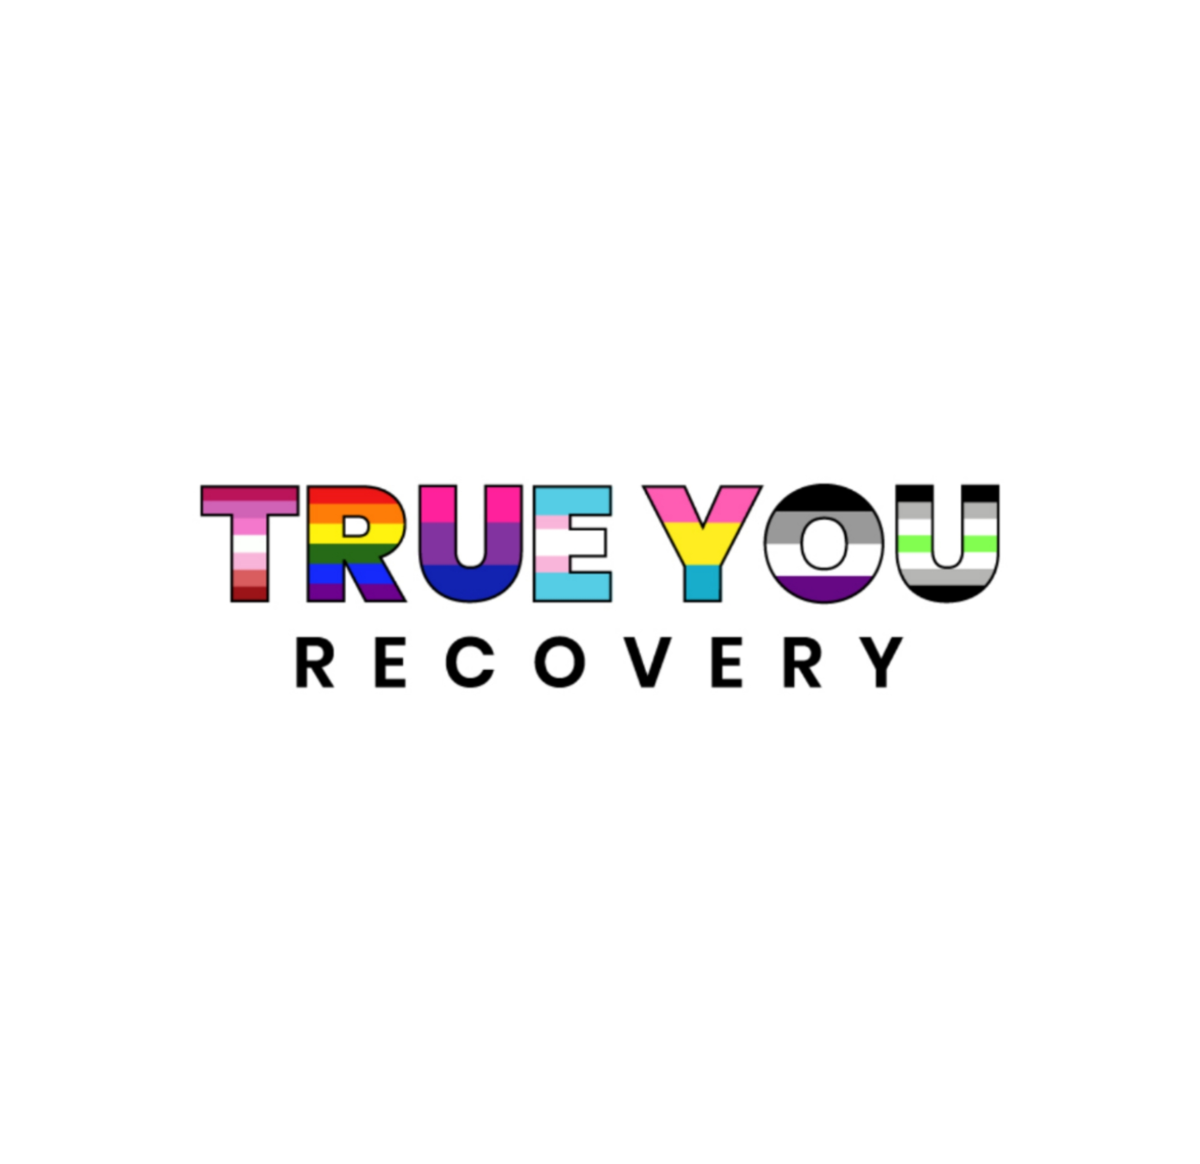 TRUE You Recovery